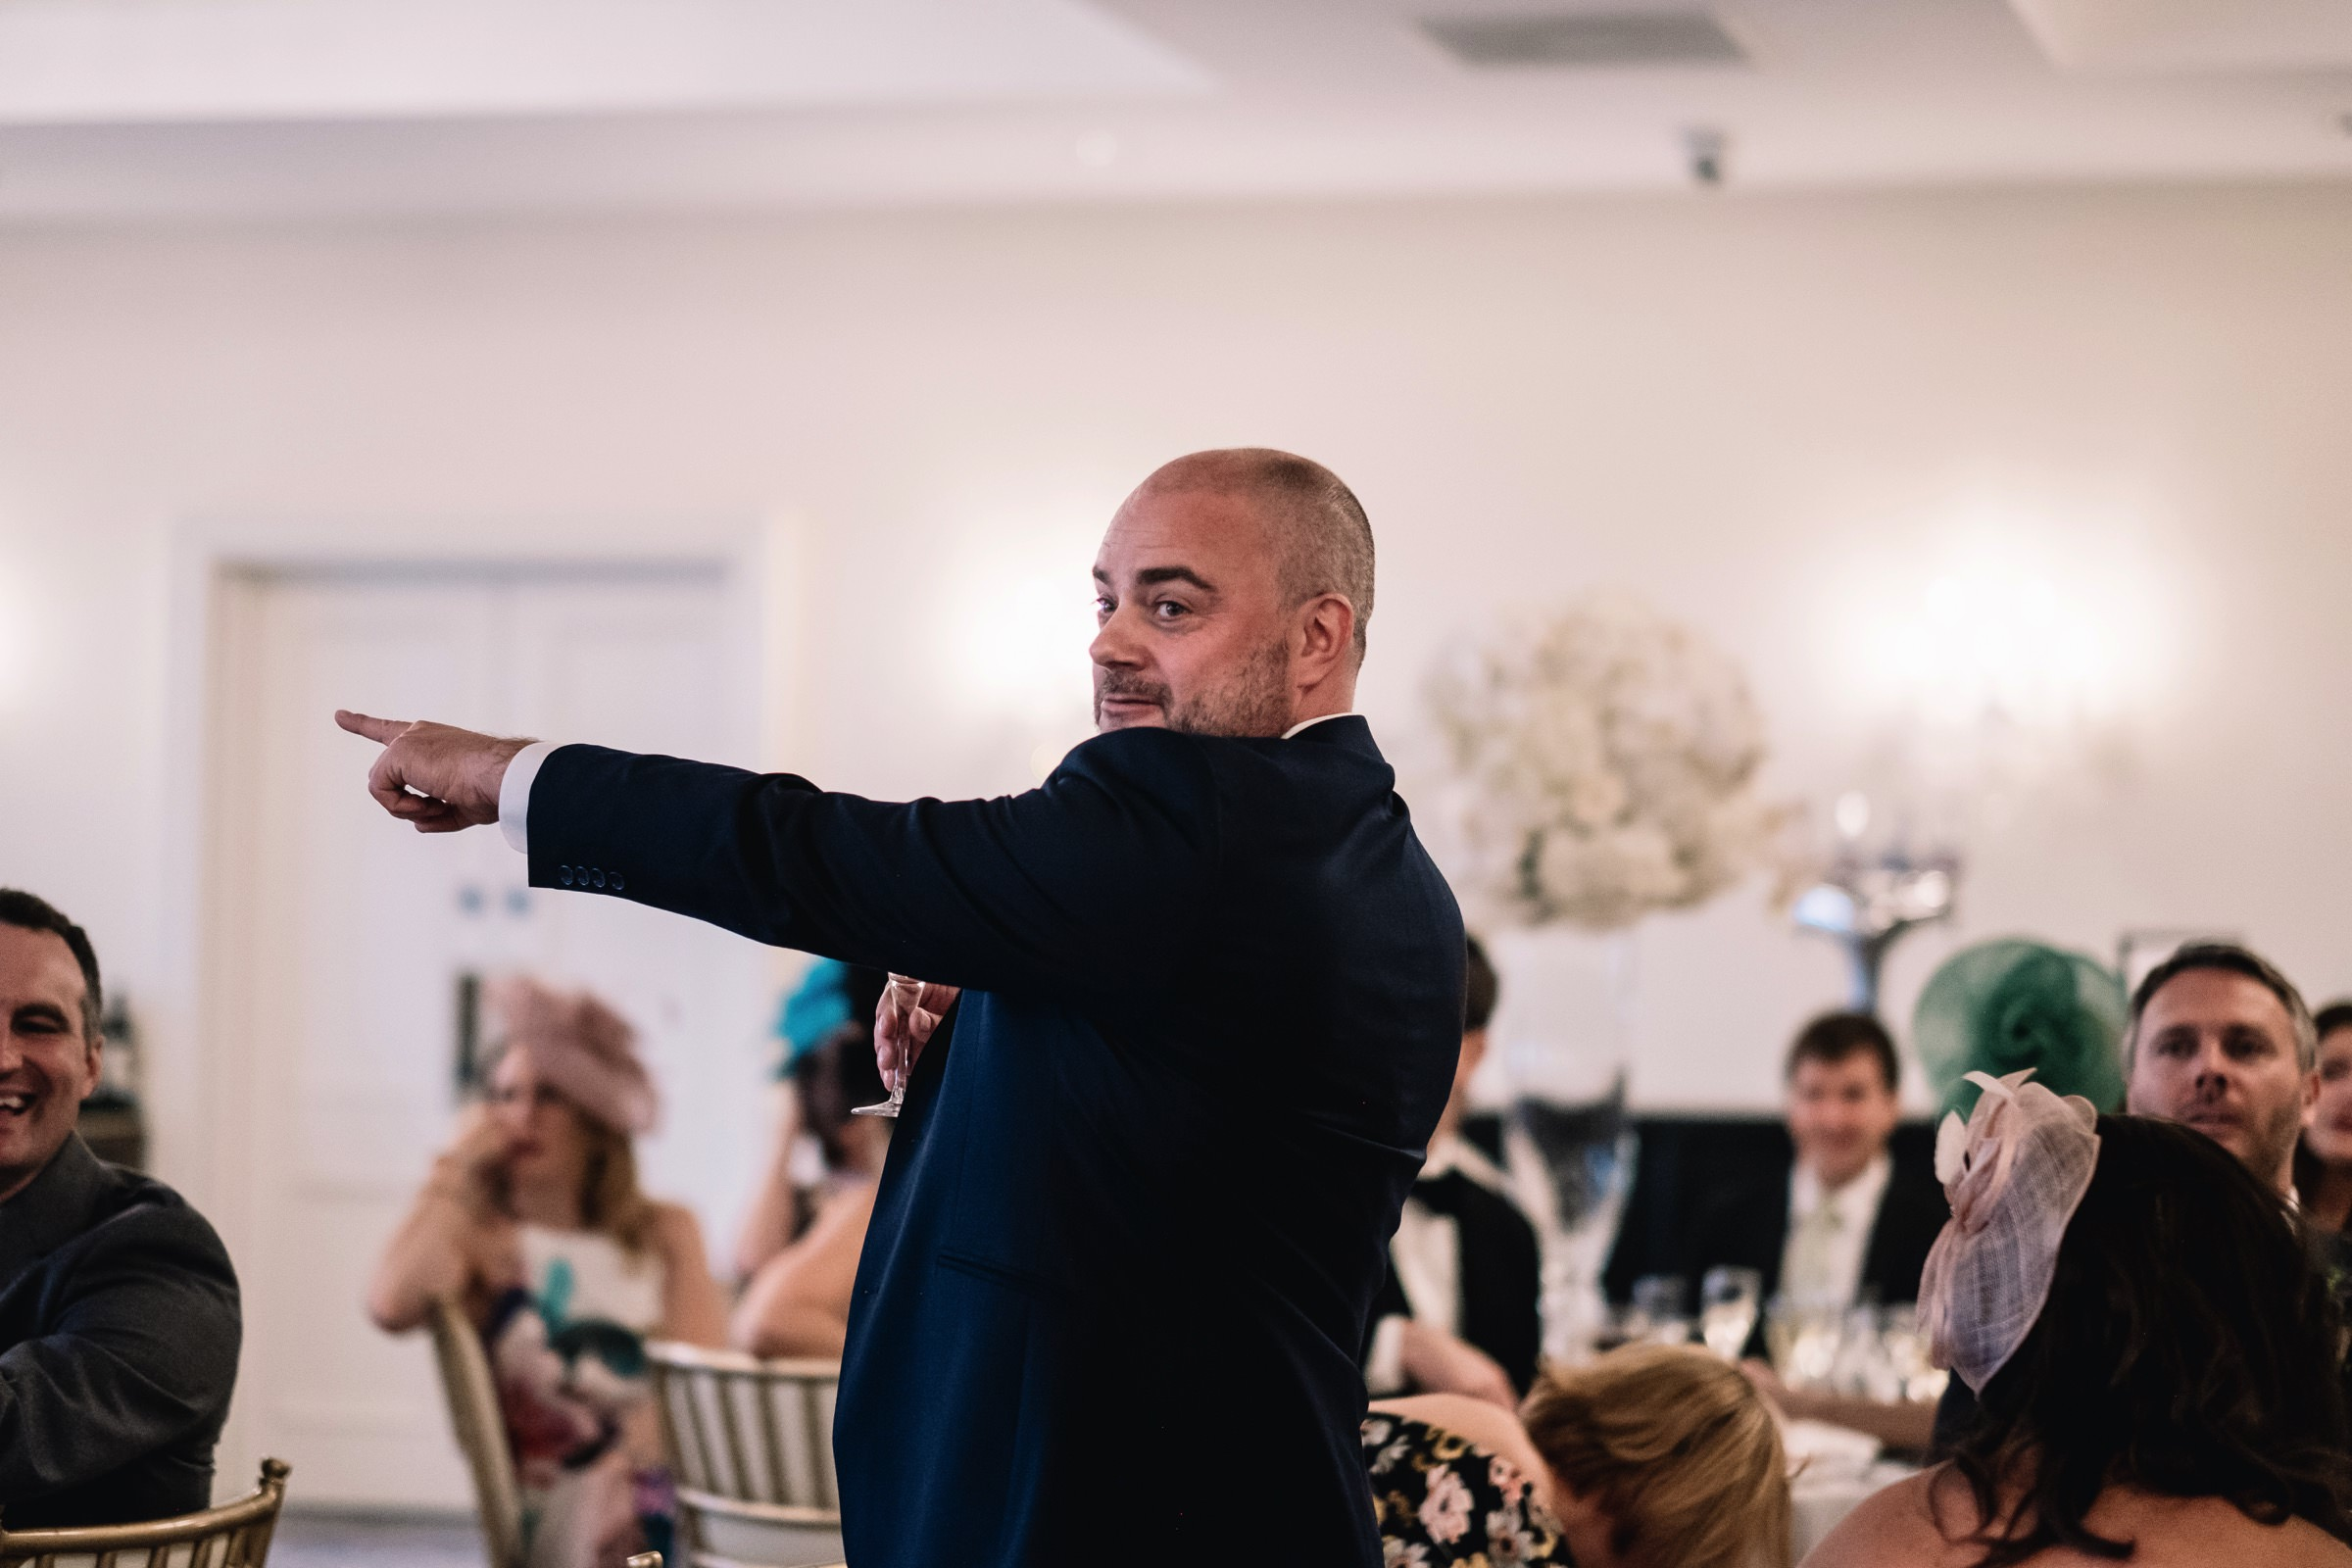 Pointing wedding guest